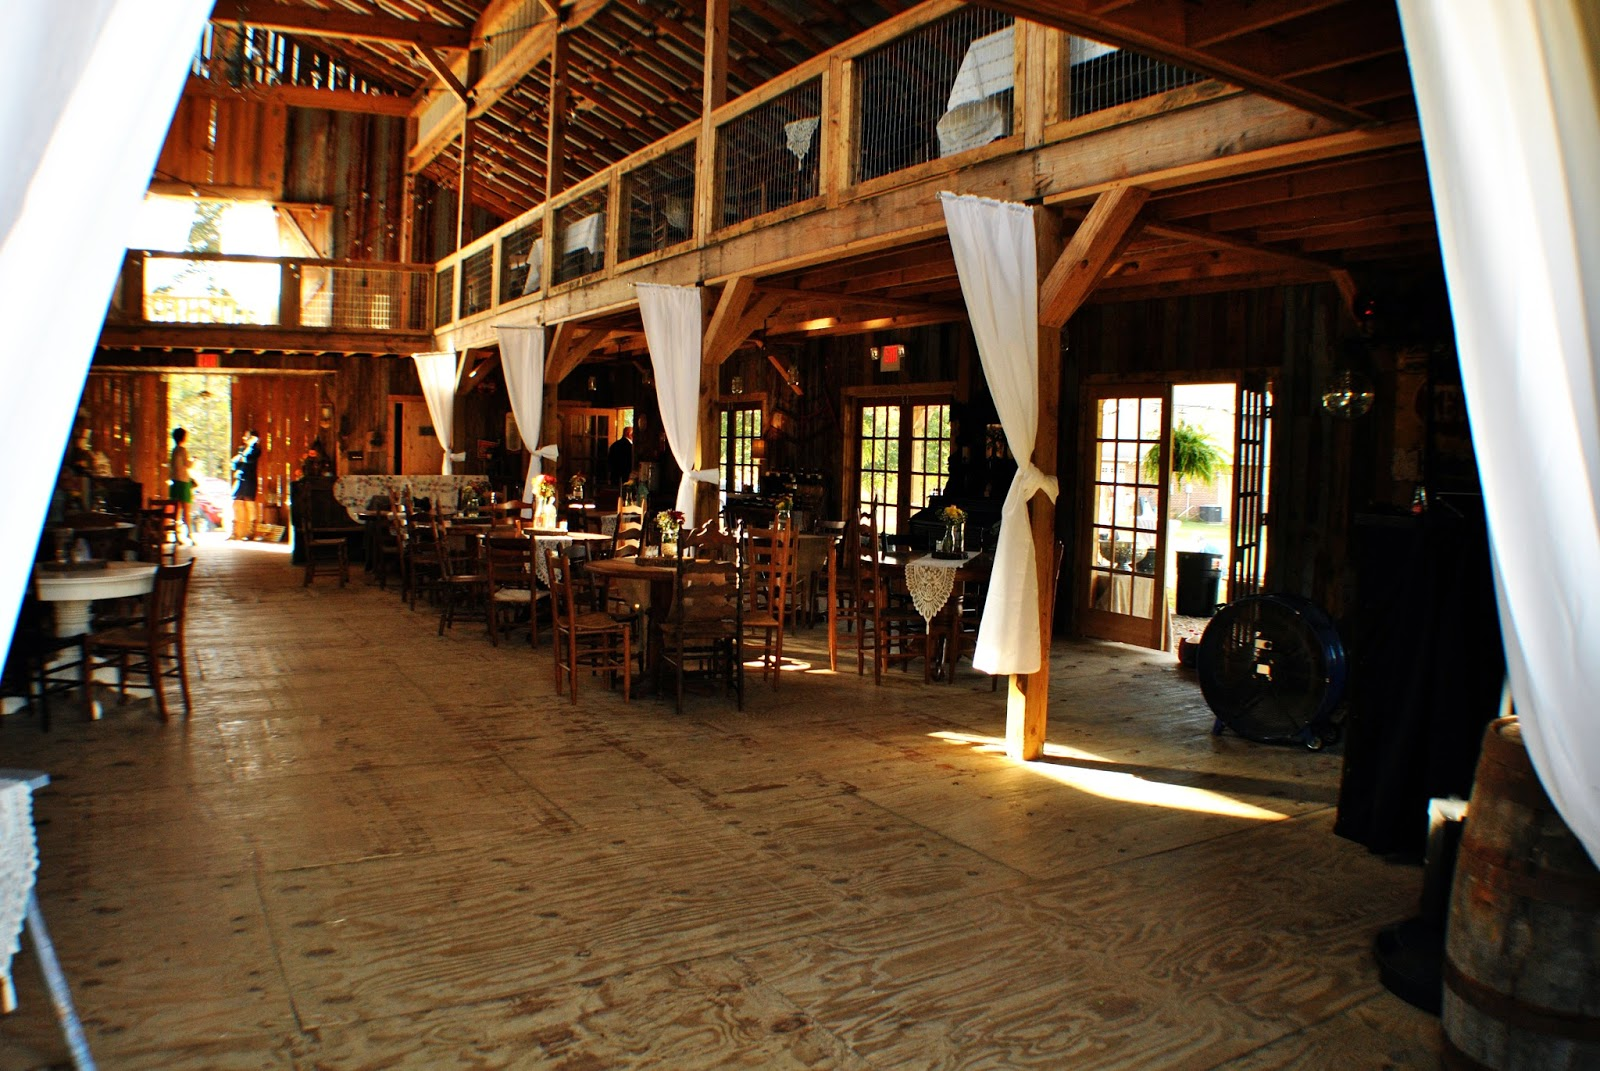 With Class LLC Wedding Coordinators, Wedding Planners, Wedding DJs, Party DJs, Chattanooga DJs, Cleveland DJs, Dalton DJs - Queen's Chestnut Grove Farm - Tunnel Hill, GA